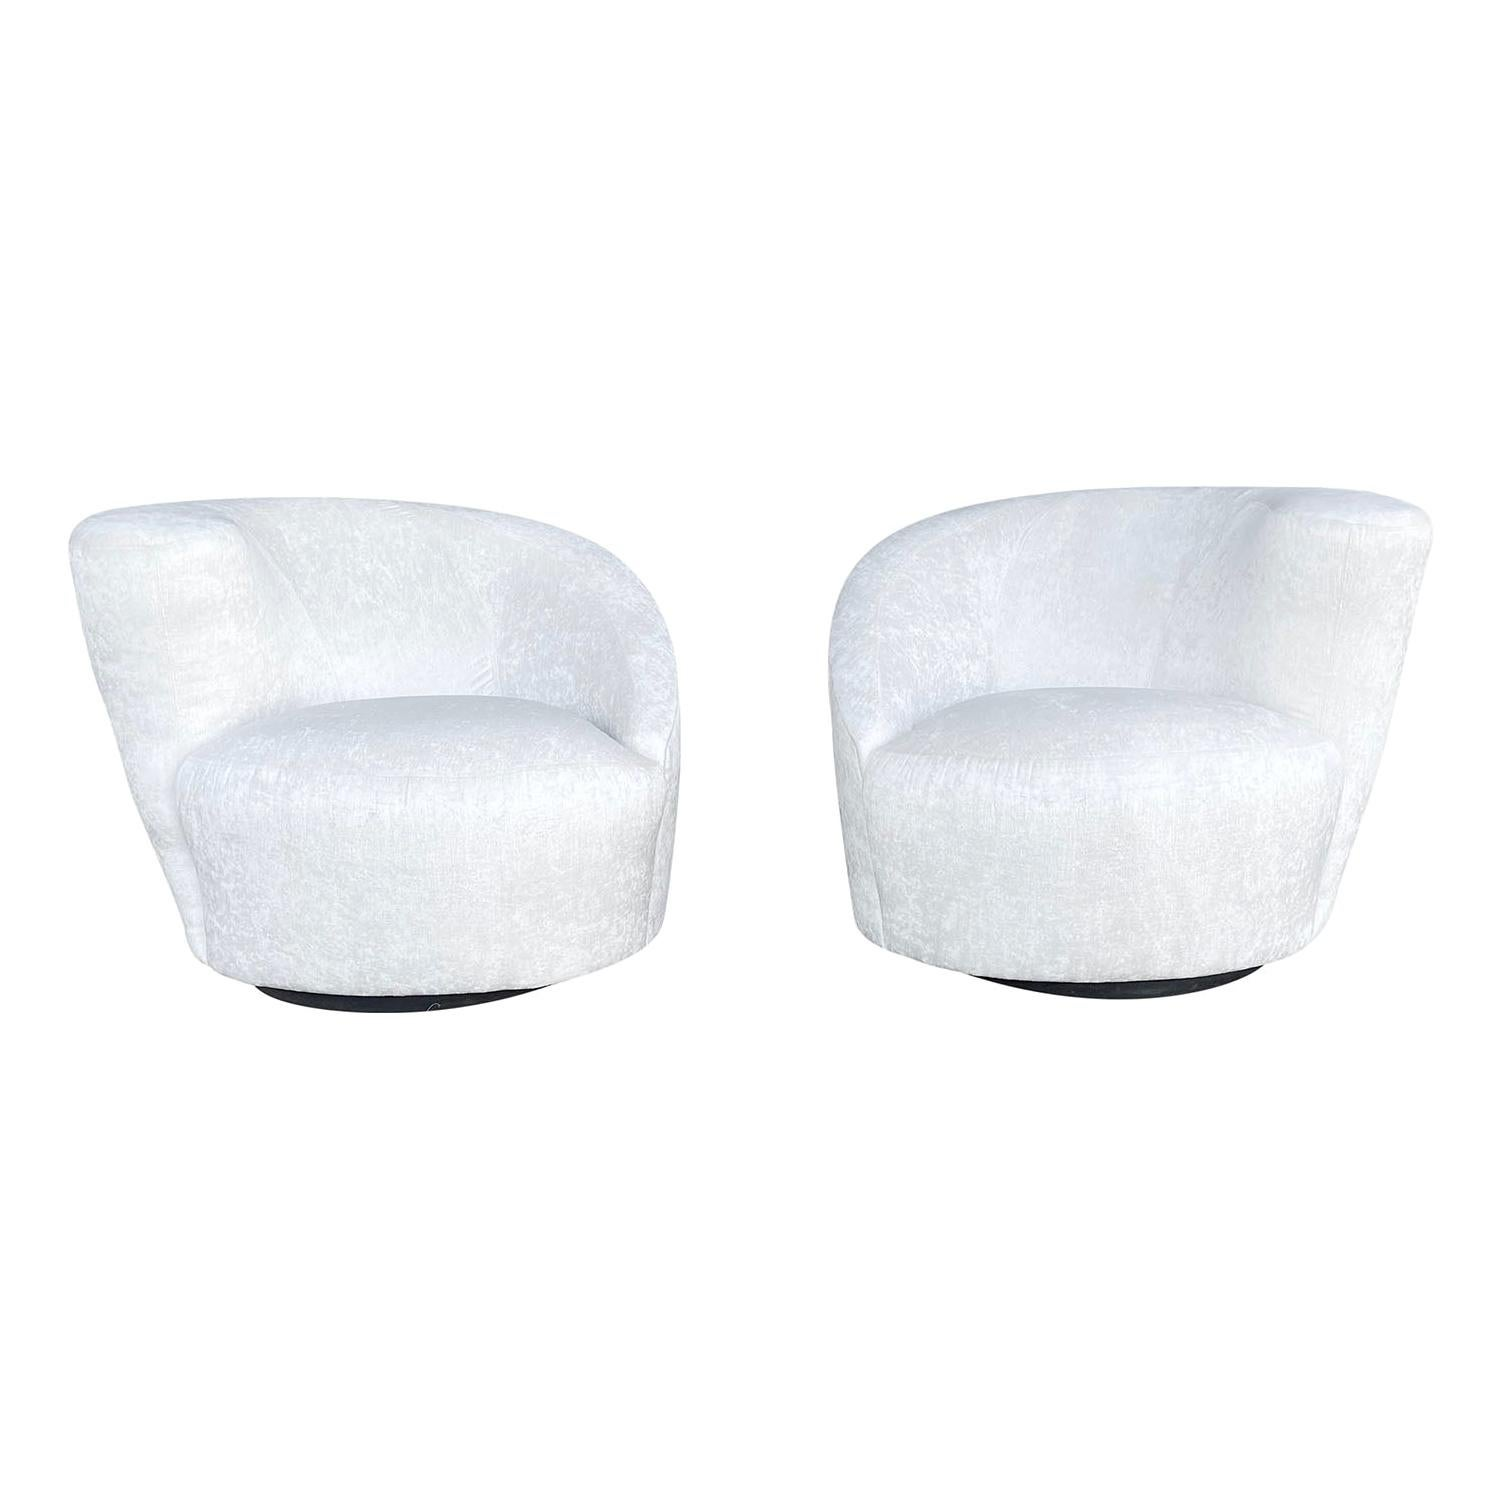 20th Century American Pair of Nautilus Swivel Chairs by Vladimir Kagan